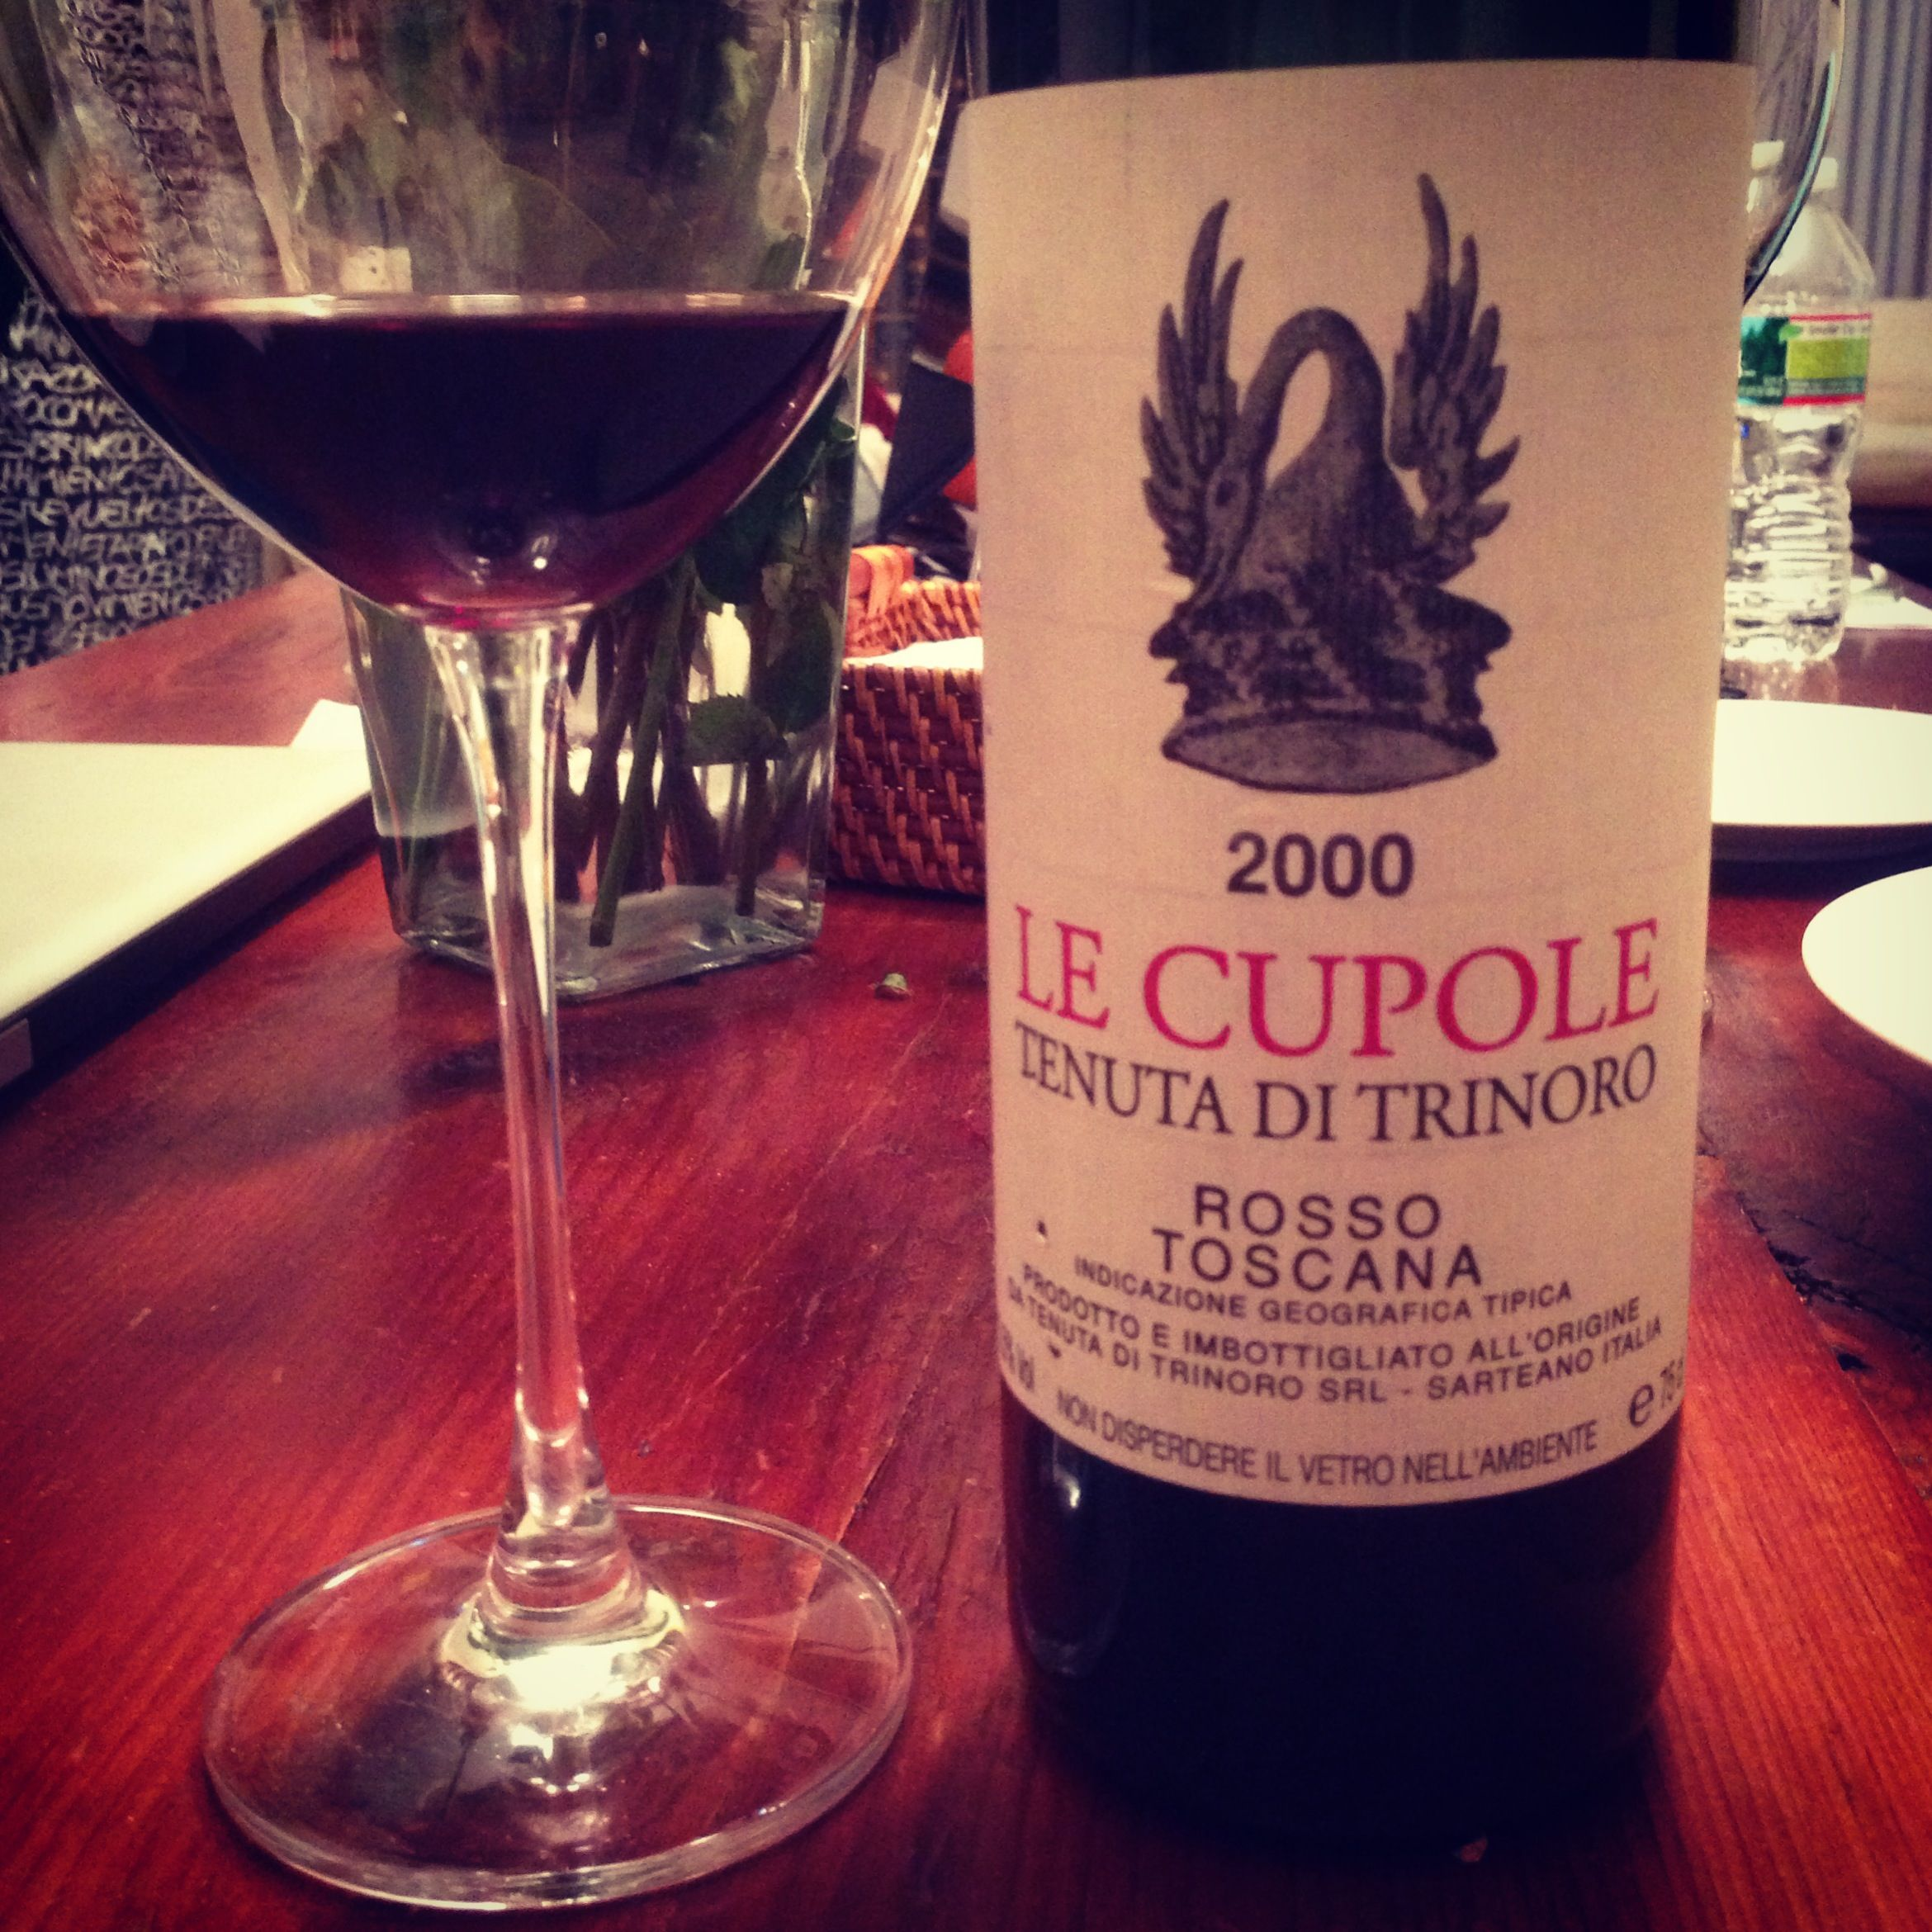 2000 Le Cupole Is Amazing Tonight This Producer Is Amazing Wine Wine Bottle Alcoholic Drinks Wine